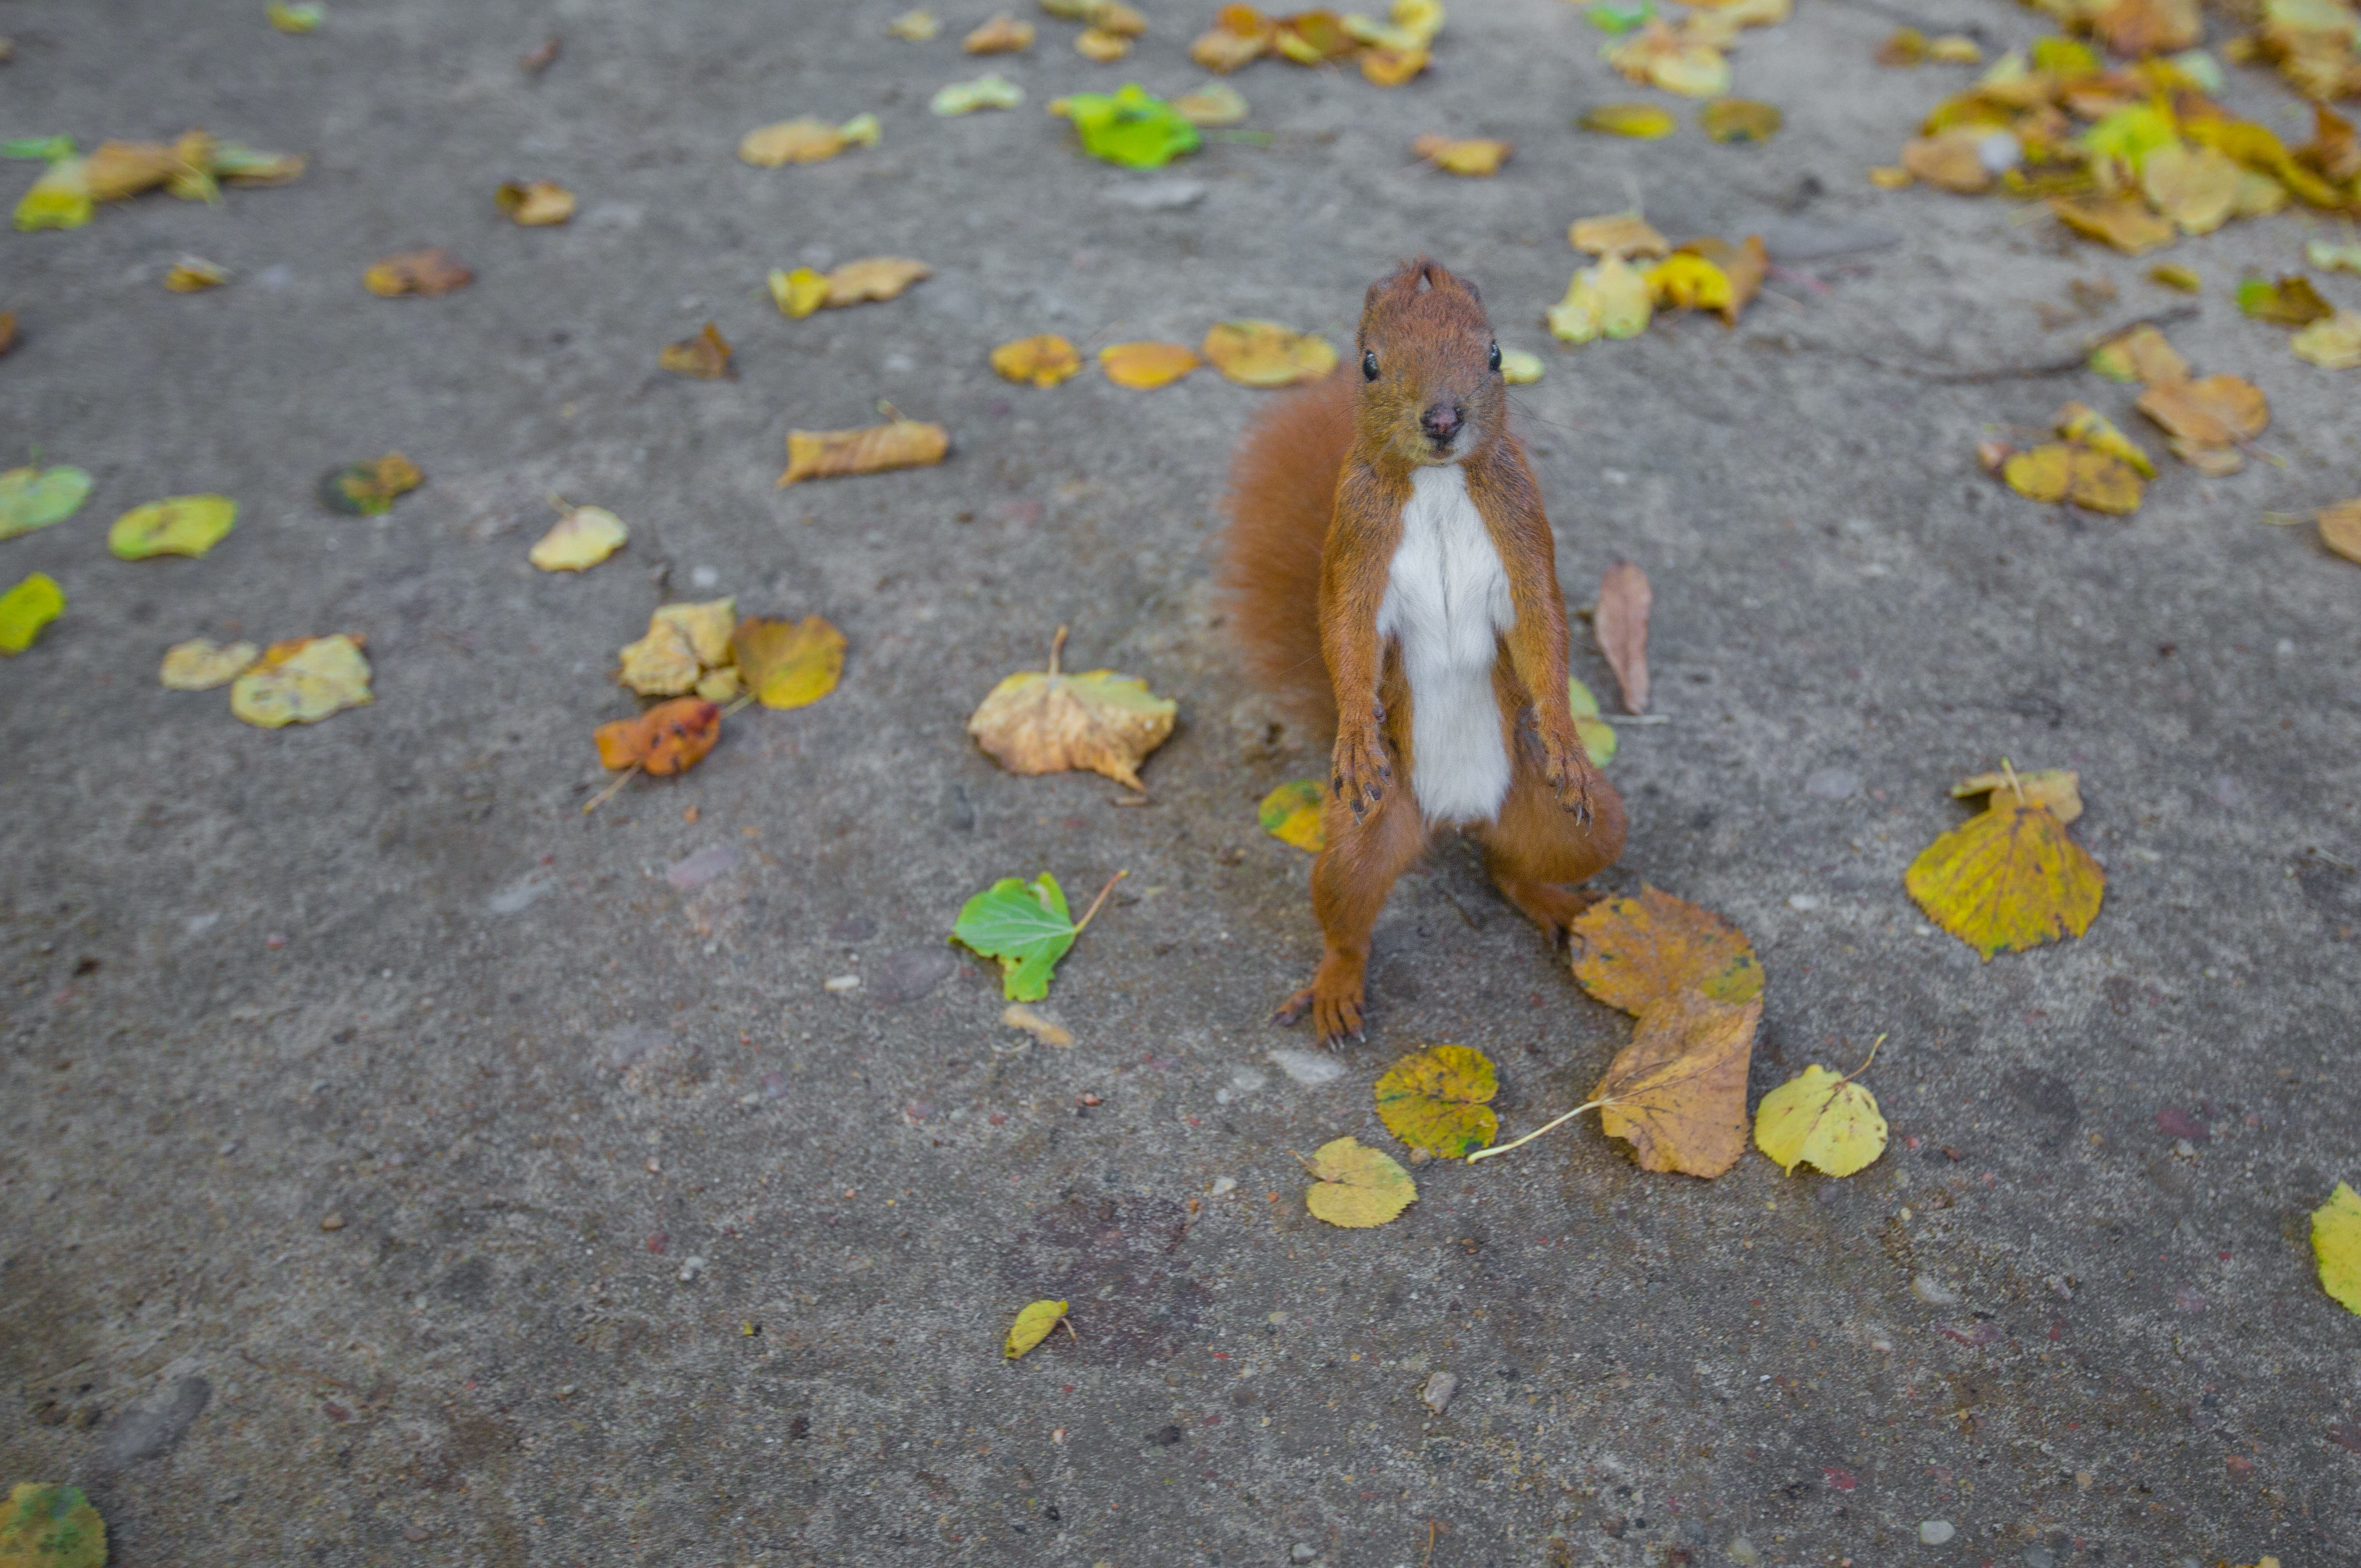 An orange squirrel standing up on a street with scattered autumn leaves